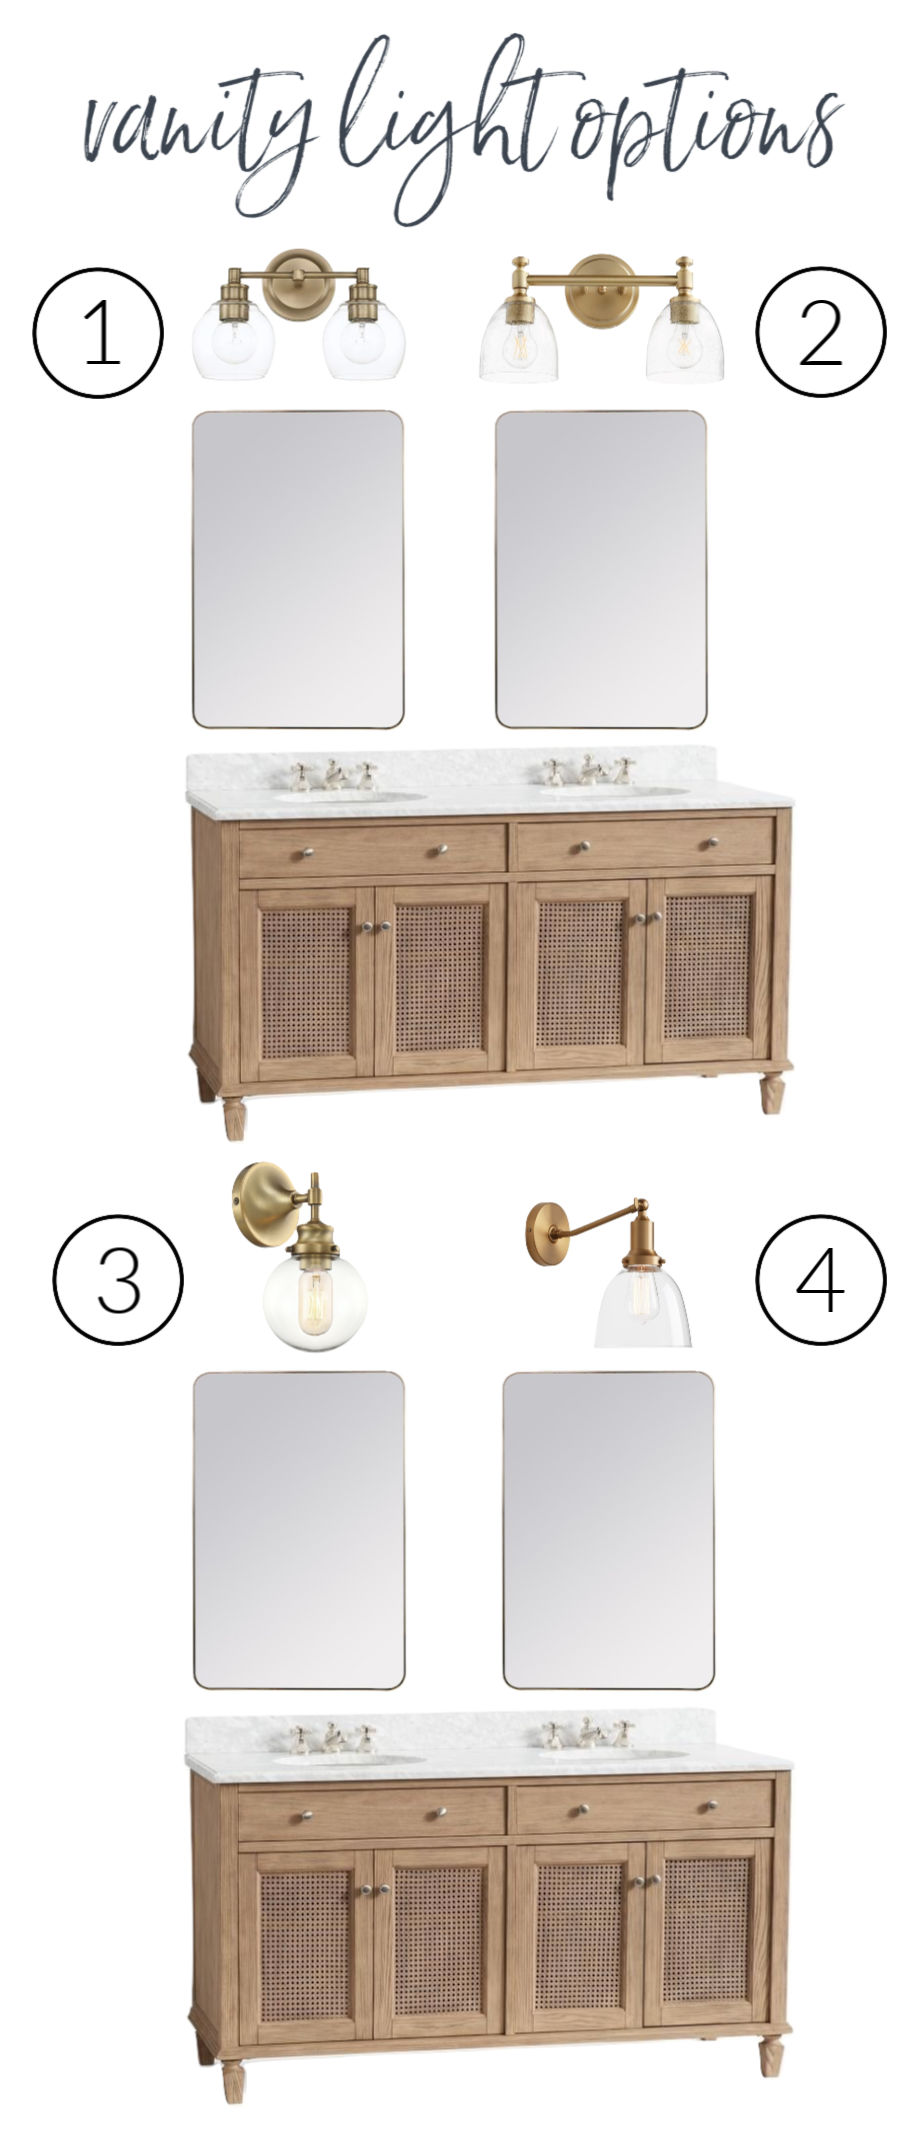 Four beautiful sconce lighting options for above a bathroom vanity!